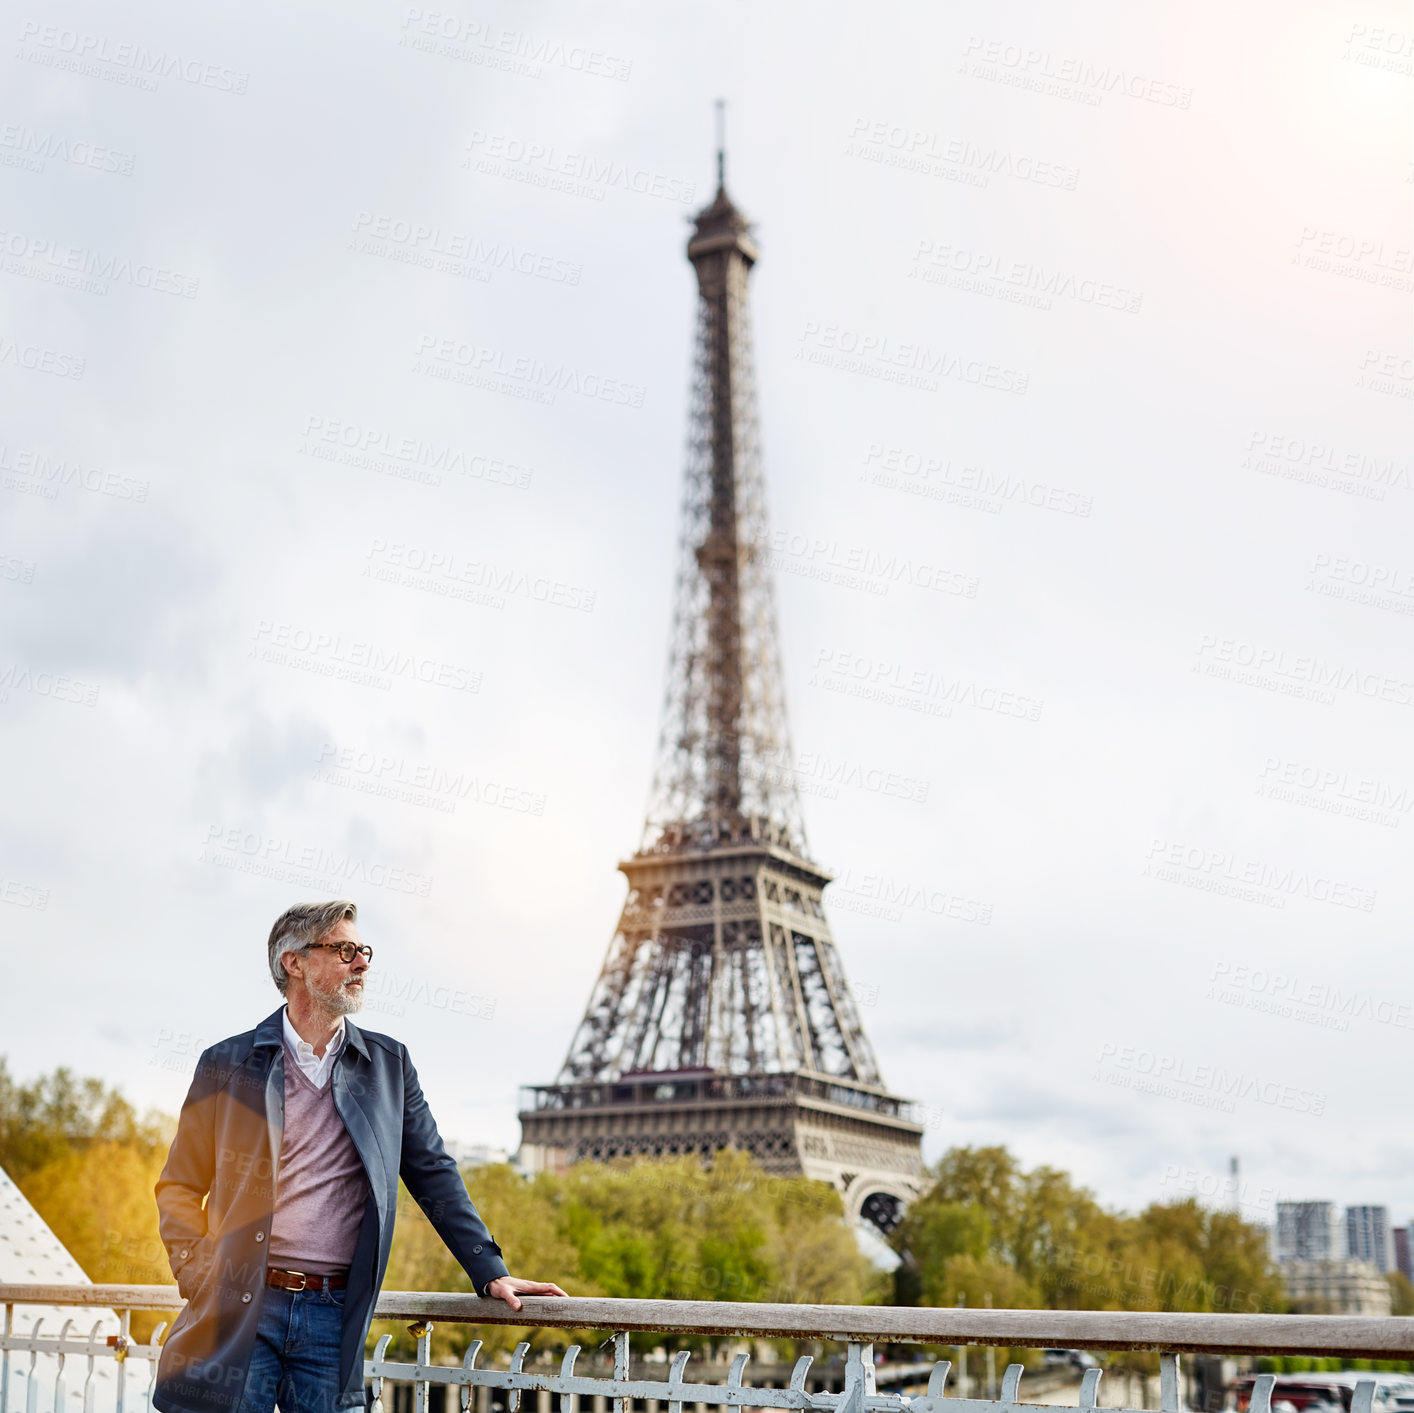 Buy stock photo Shot of a handsome mature man leaning on a railing in Paris with the Eiffel Tower in the backgournd